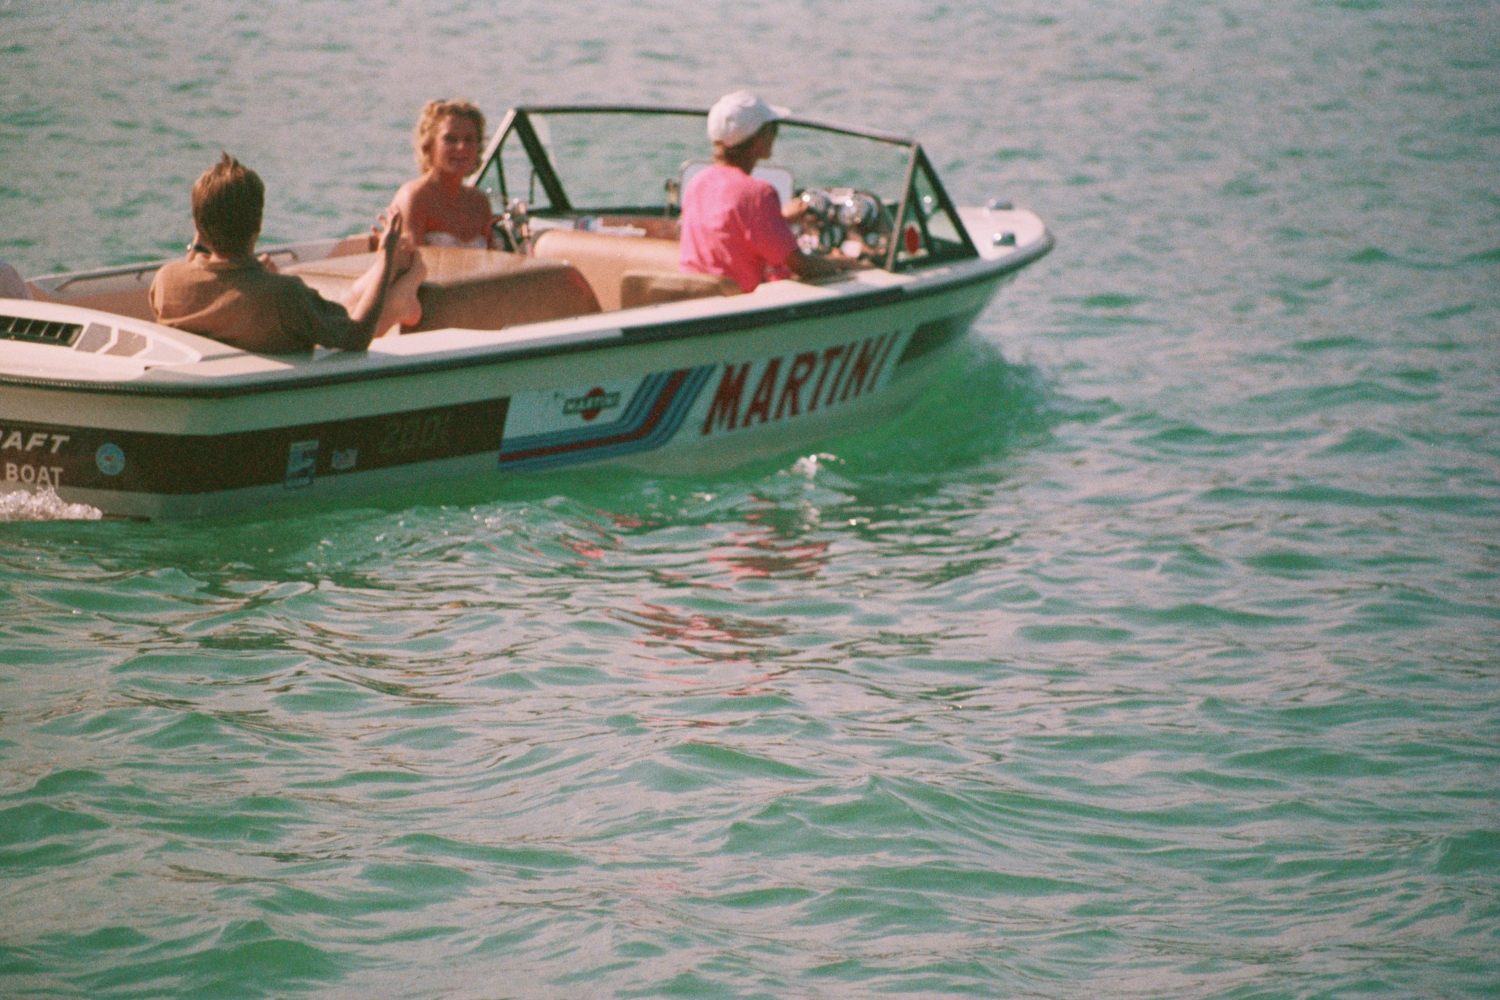 Martini Waterski boat on the Worthersee in Austria